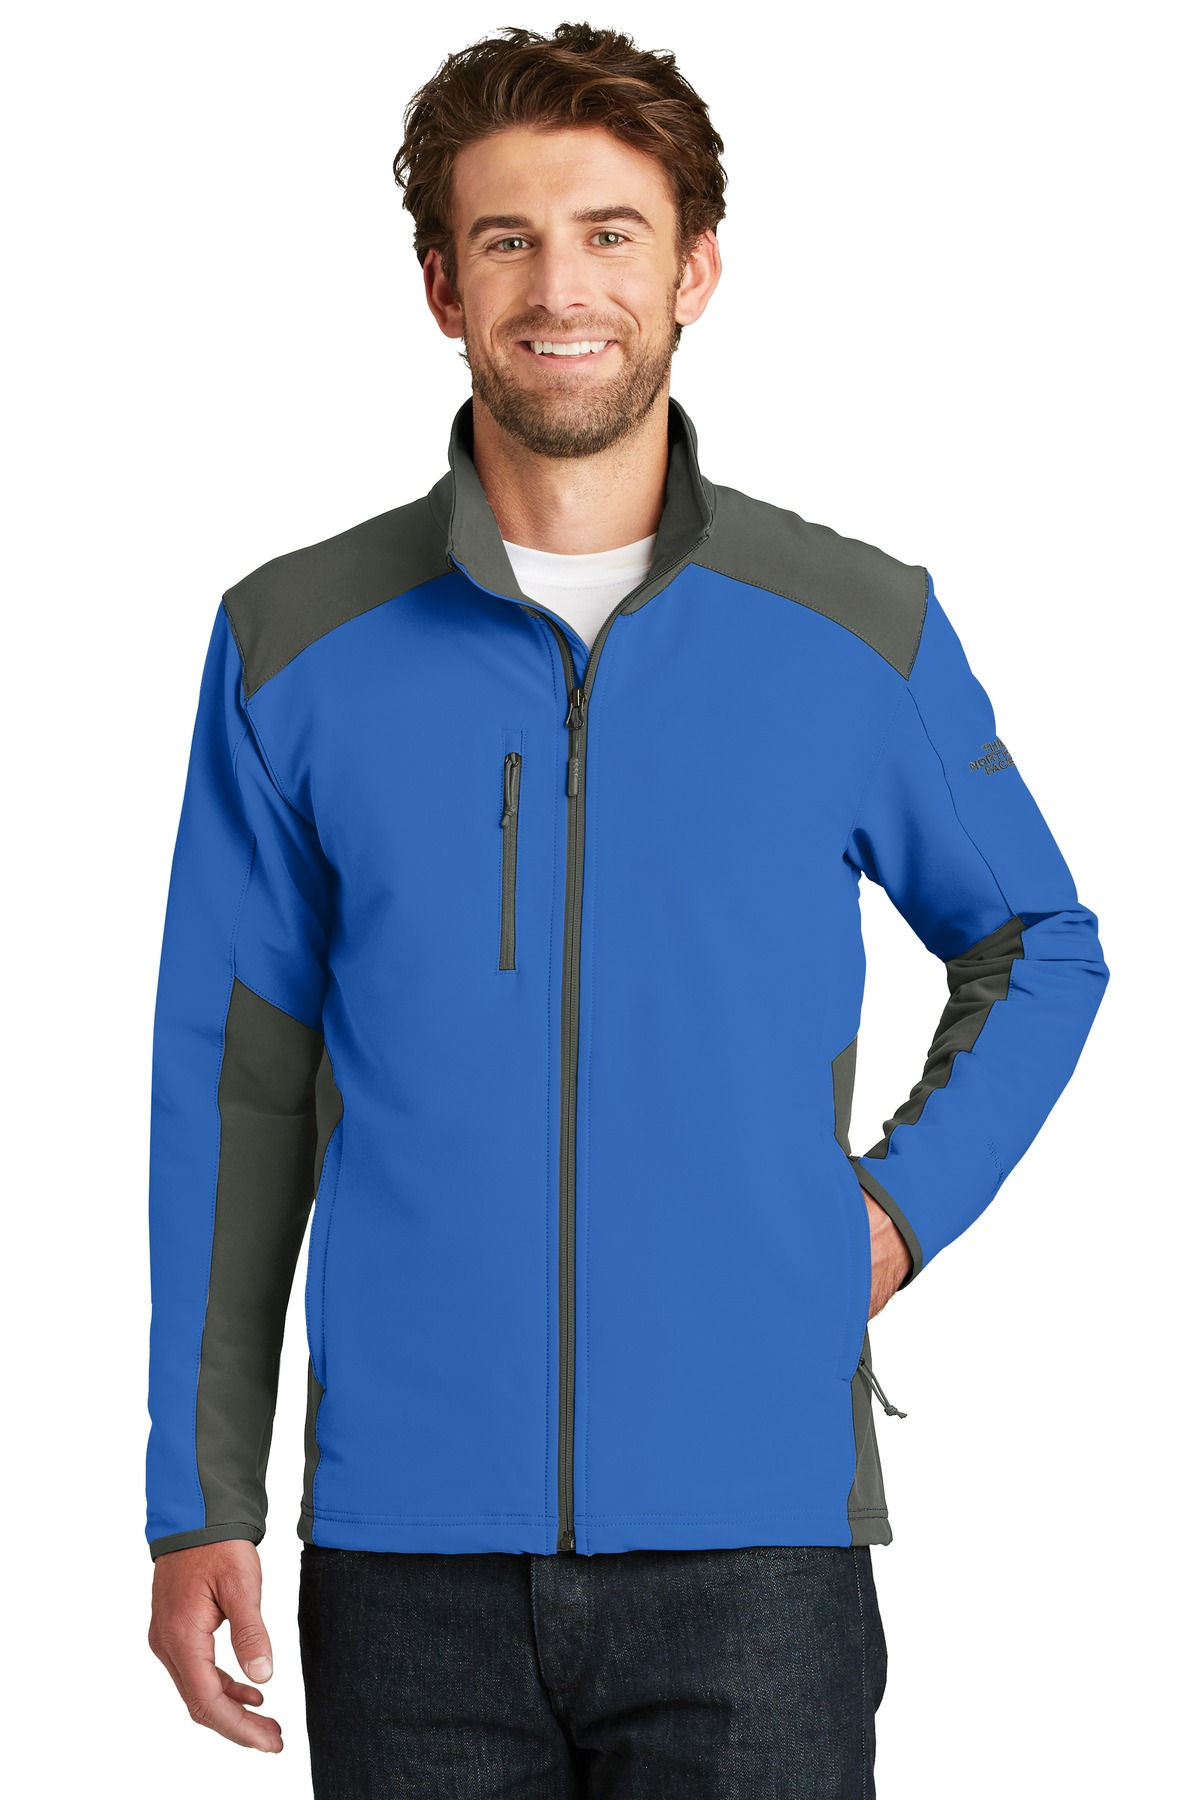 The North Face  ®  Tech Stretch Soft Shell Jacket. NF0A3LGV - Monster Blue/ Asphalt Grey